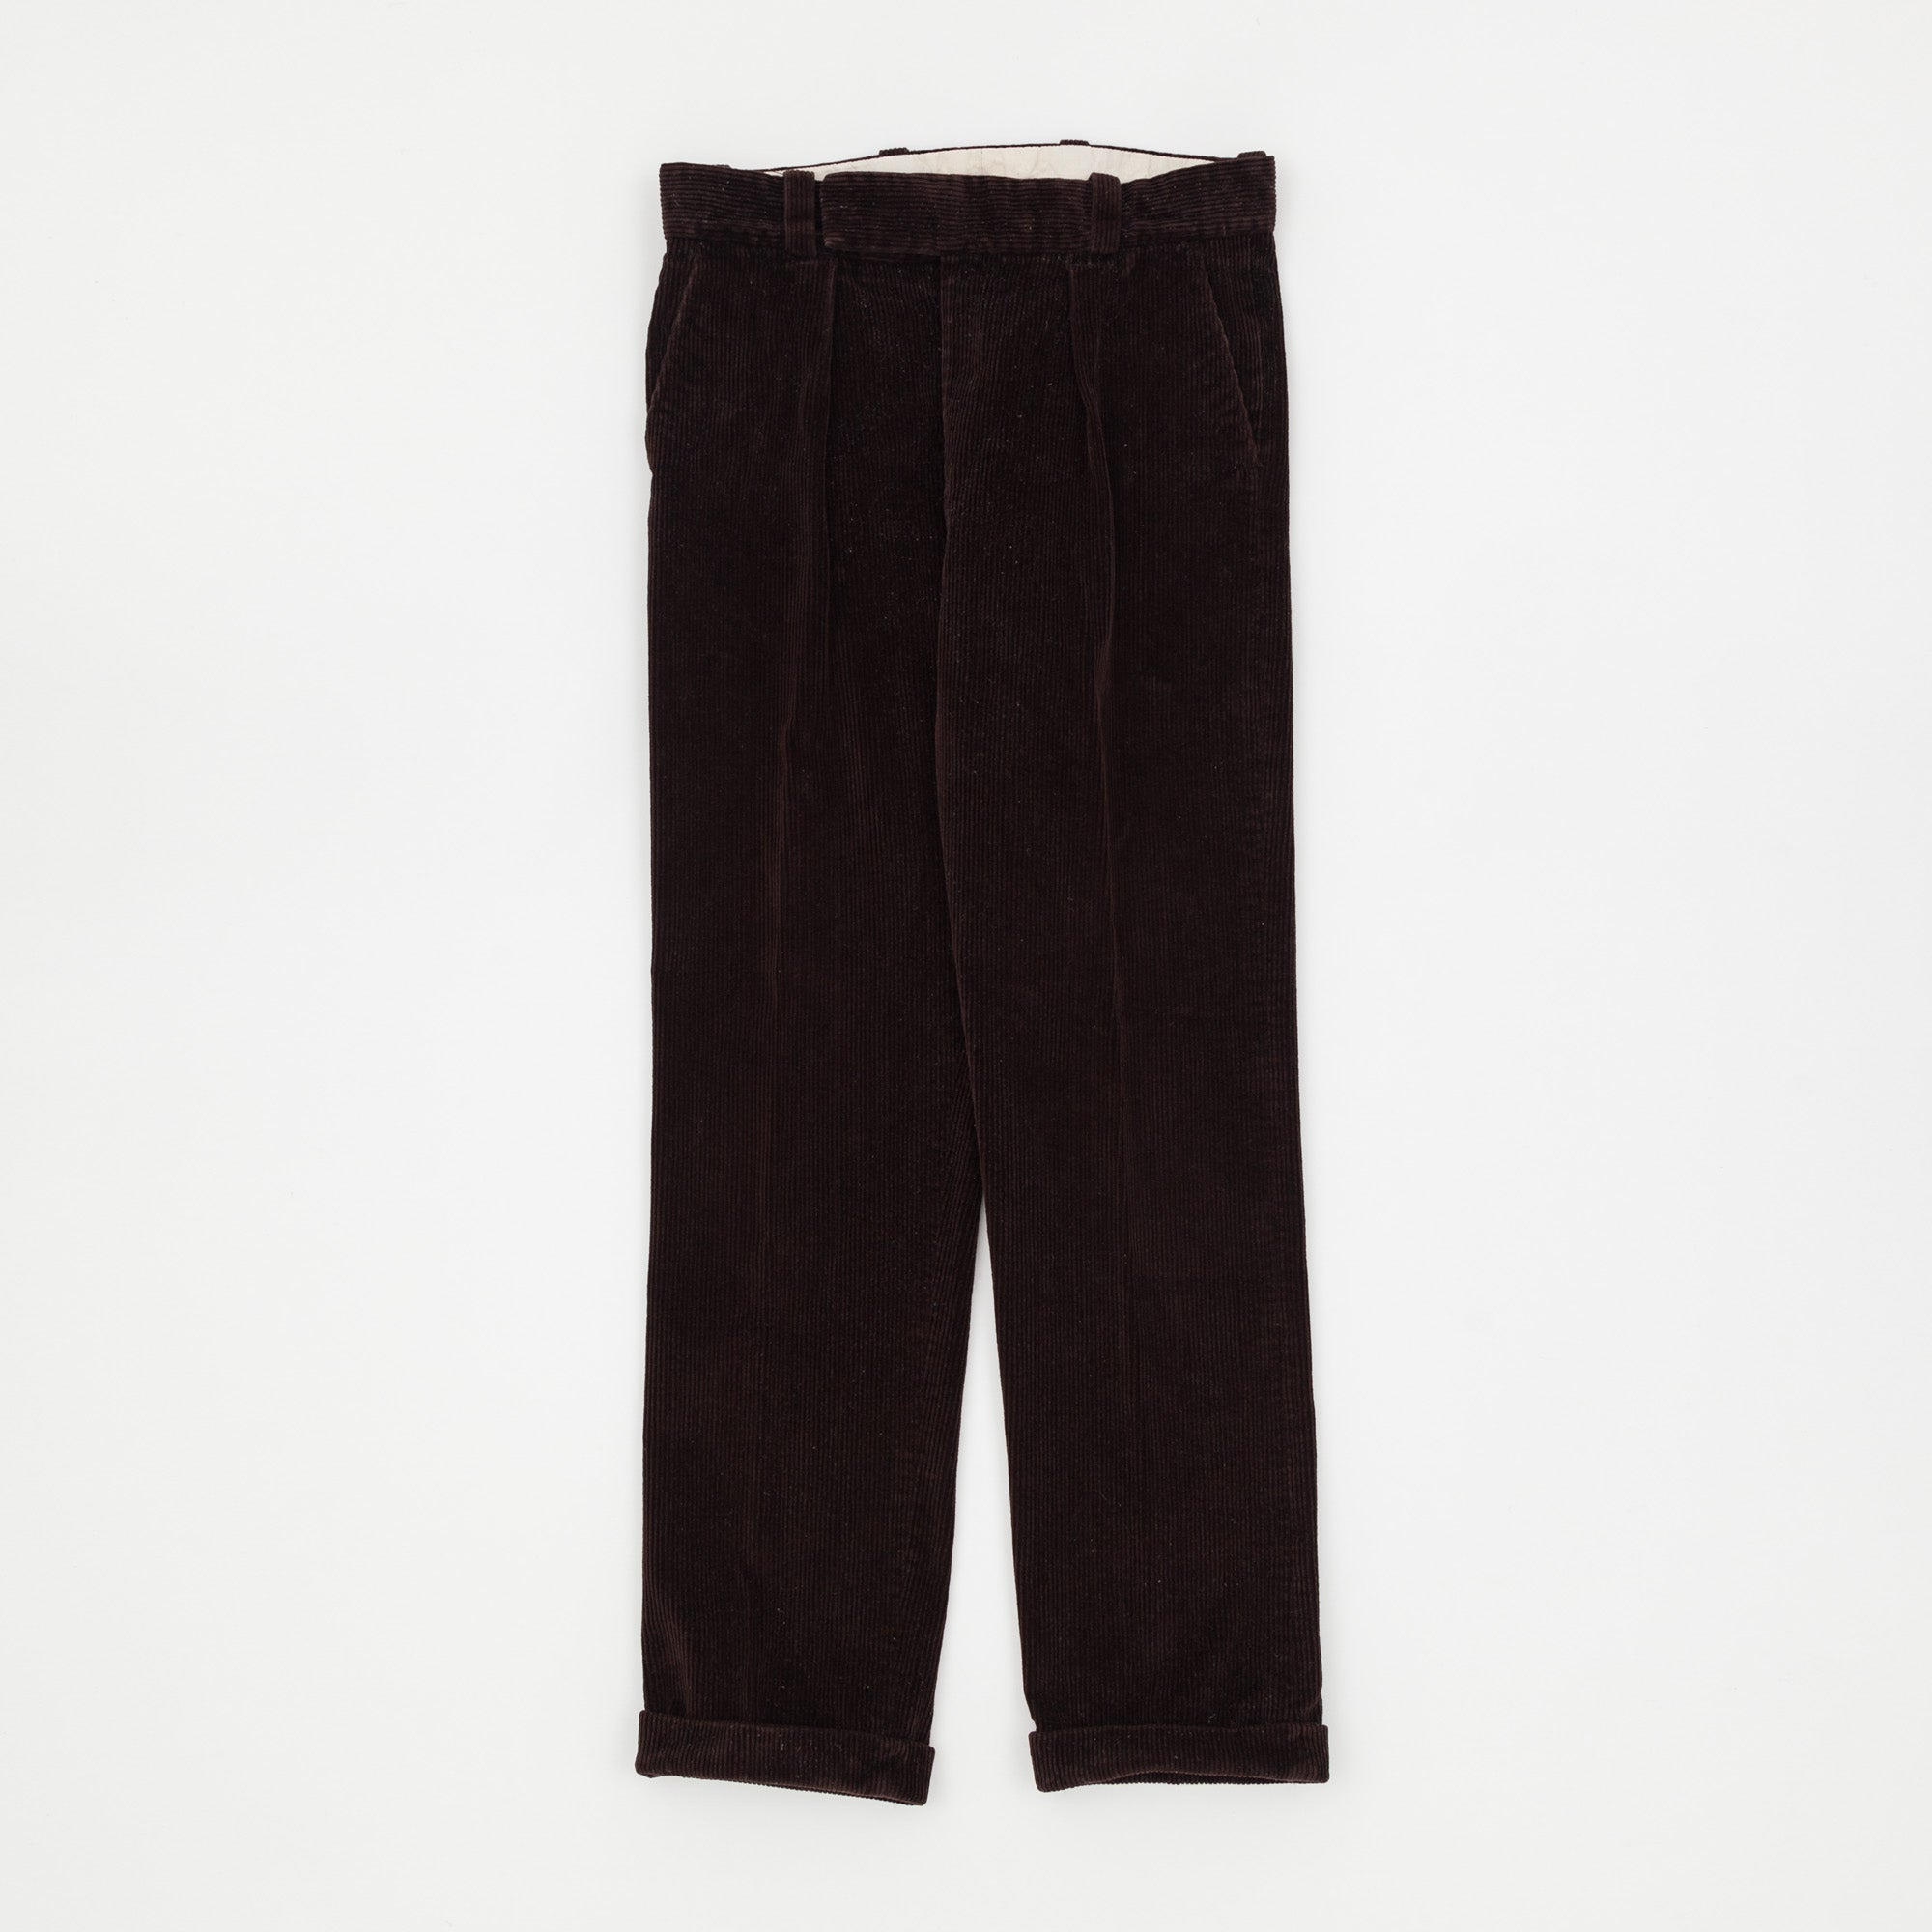 Purdey Corduroy Trousers